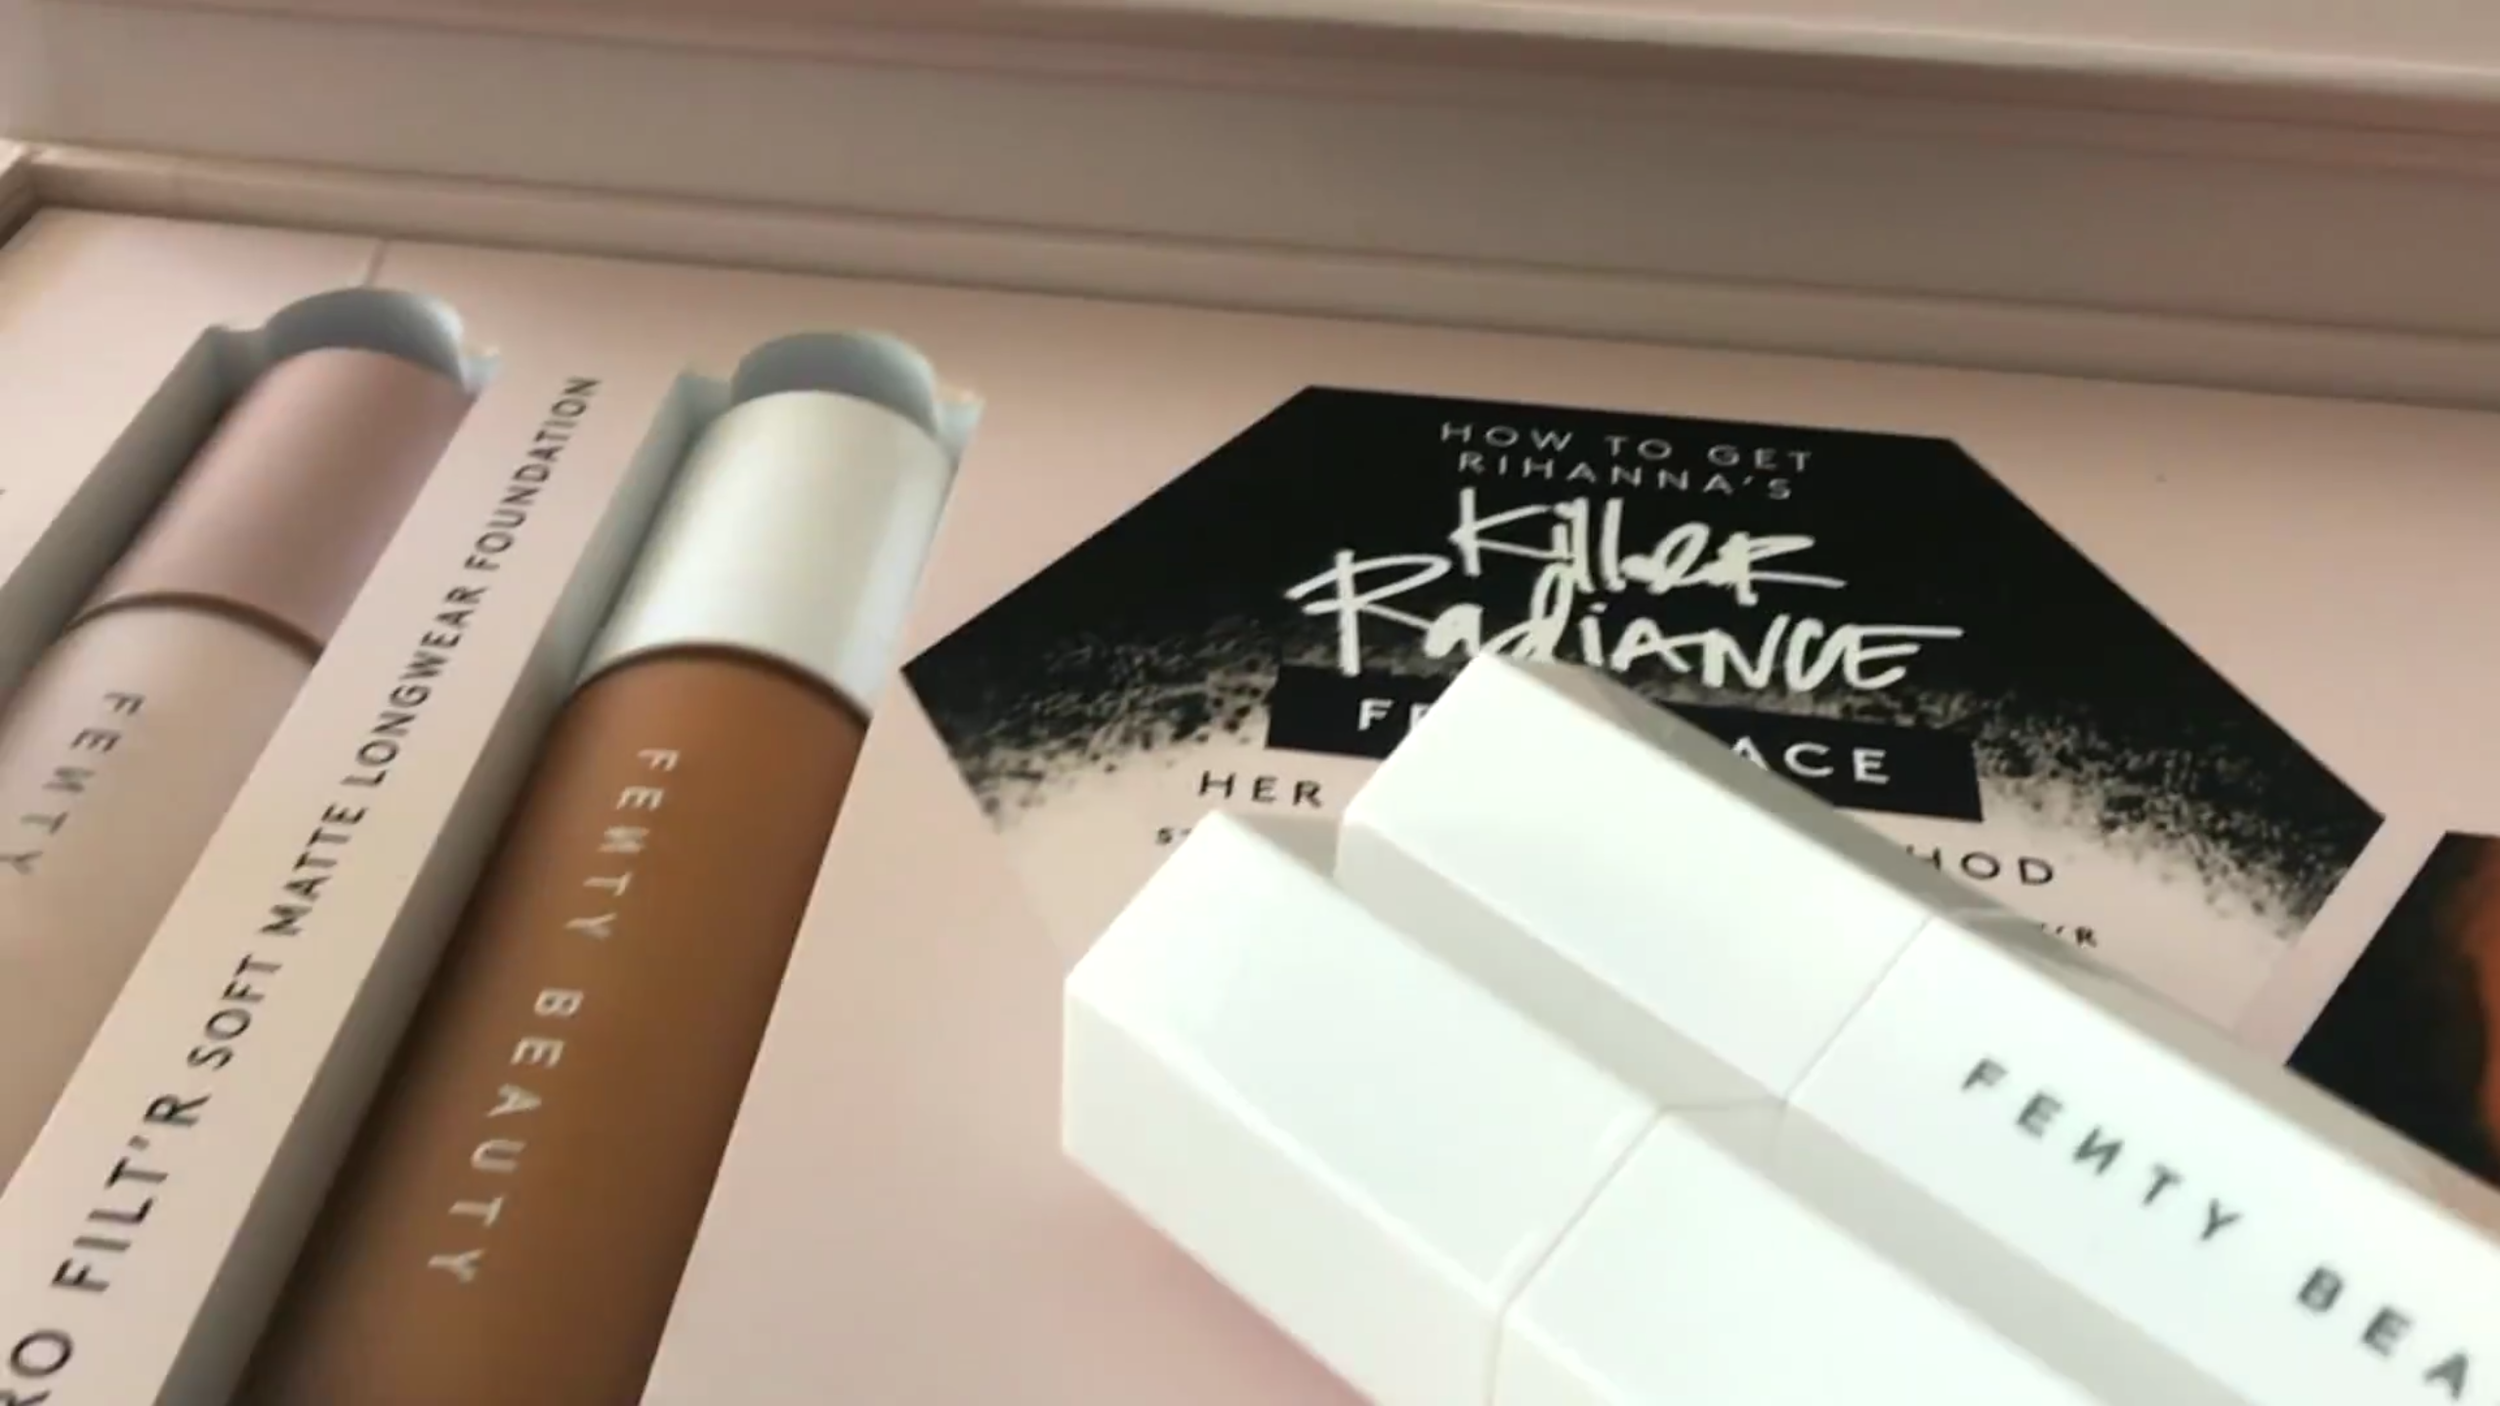 The PRO FILT'R foundation has a more watery consistency of base most foundation reviewers via their YouTube tutorials described but they were always pleased with the sheer and medium coverage with only a few pumps of the Fenty Beauty Pro Filter which is very exciting when thinking of the fact that this is only the beginning for the makeup line. Also said to blend closely to adjacent shades meaning that there will always be shades to even rely on incase your truest shade sells out on shelves. - via Cyclolore Magazine